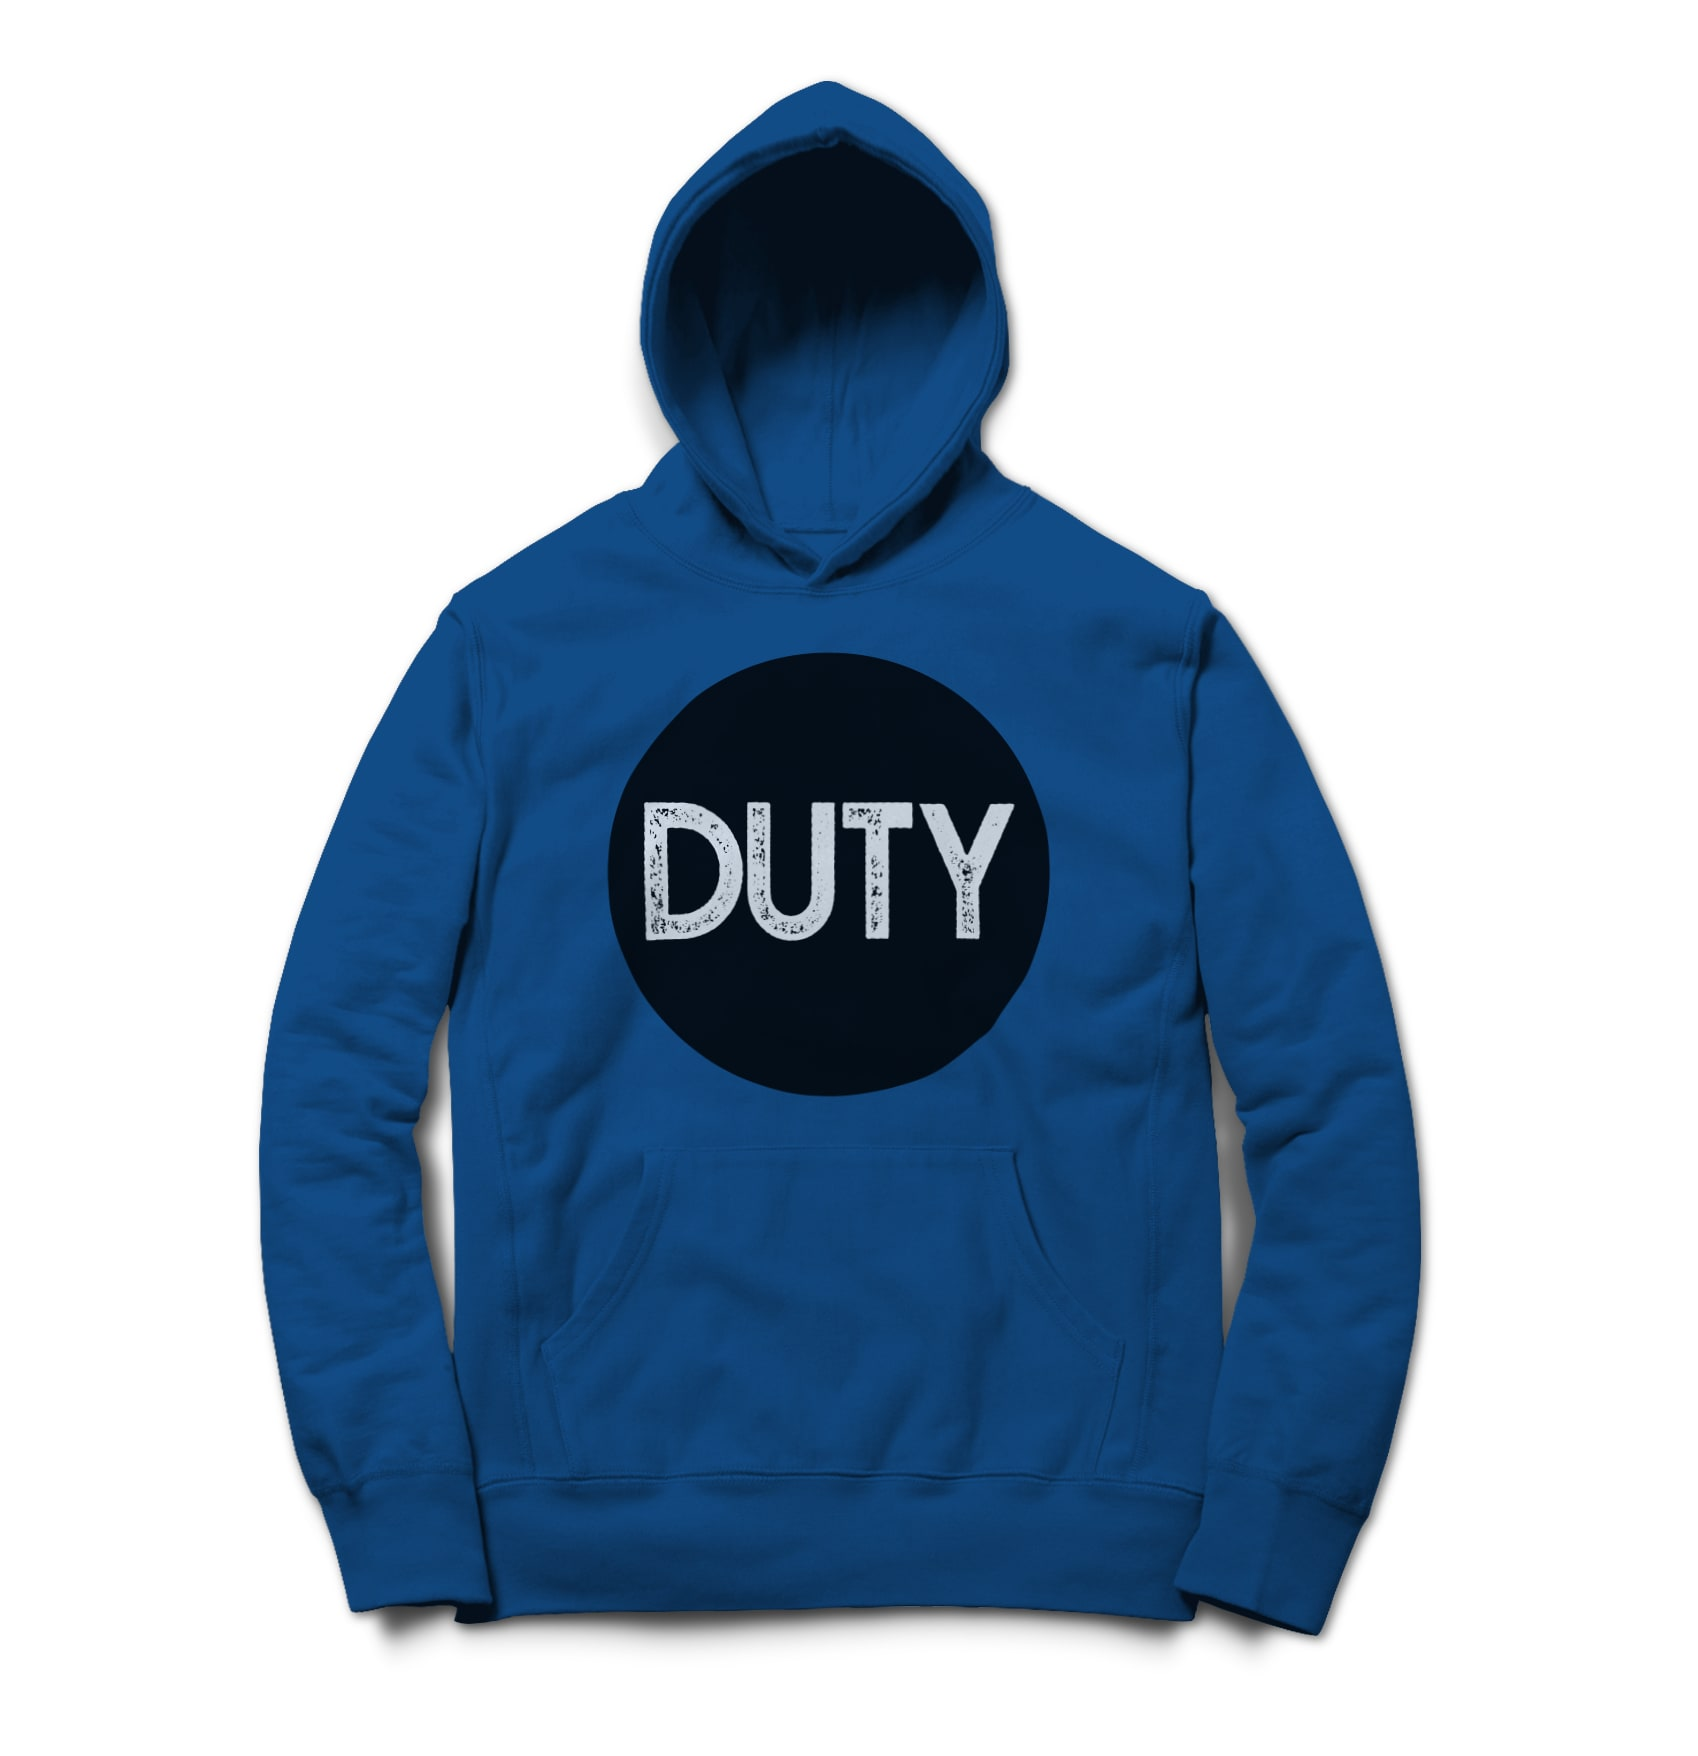 Duty duty circle logo blue 1542364125